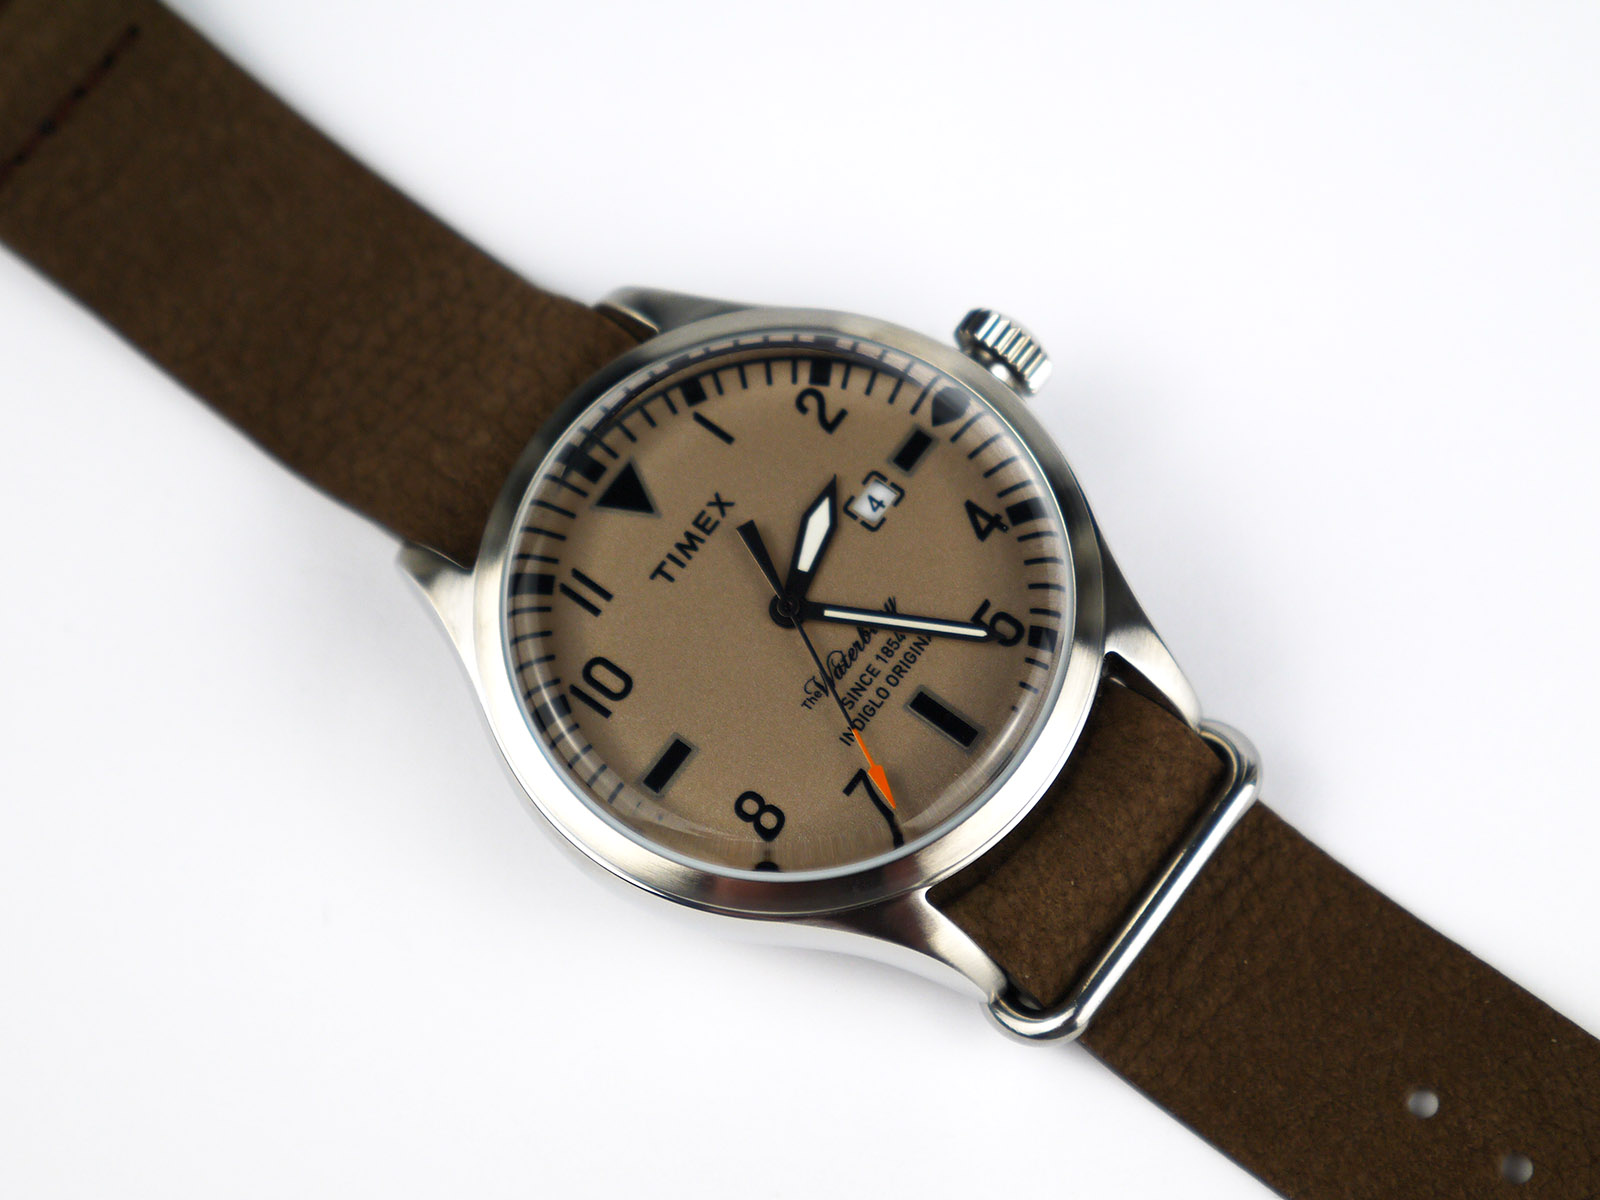 Timex tw2p64600 waterbury watch high quality watch gallery for The waterbury